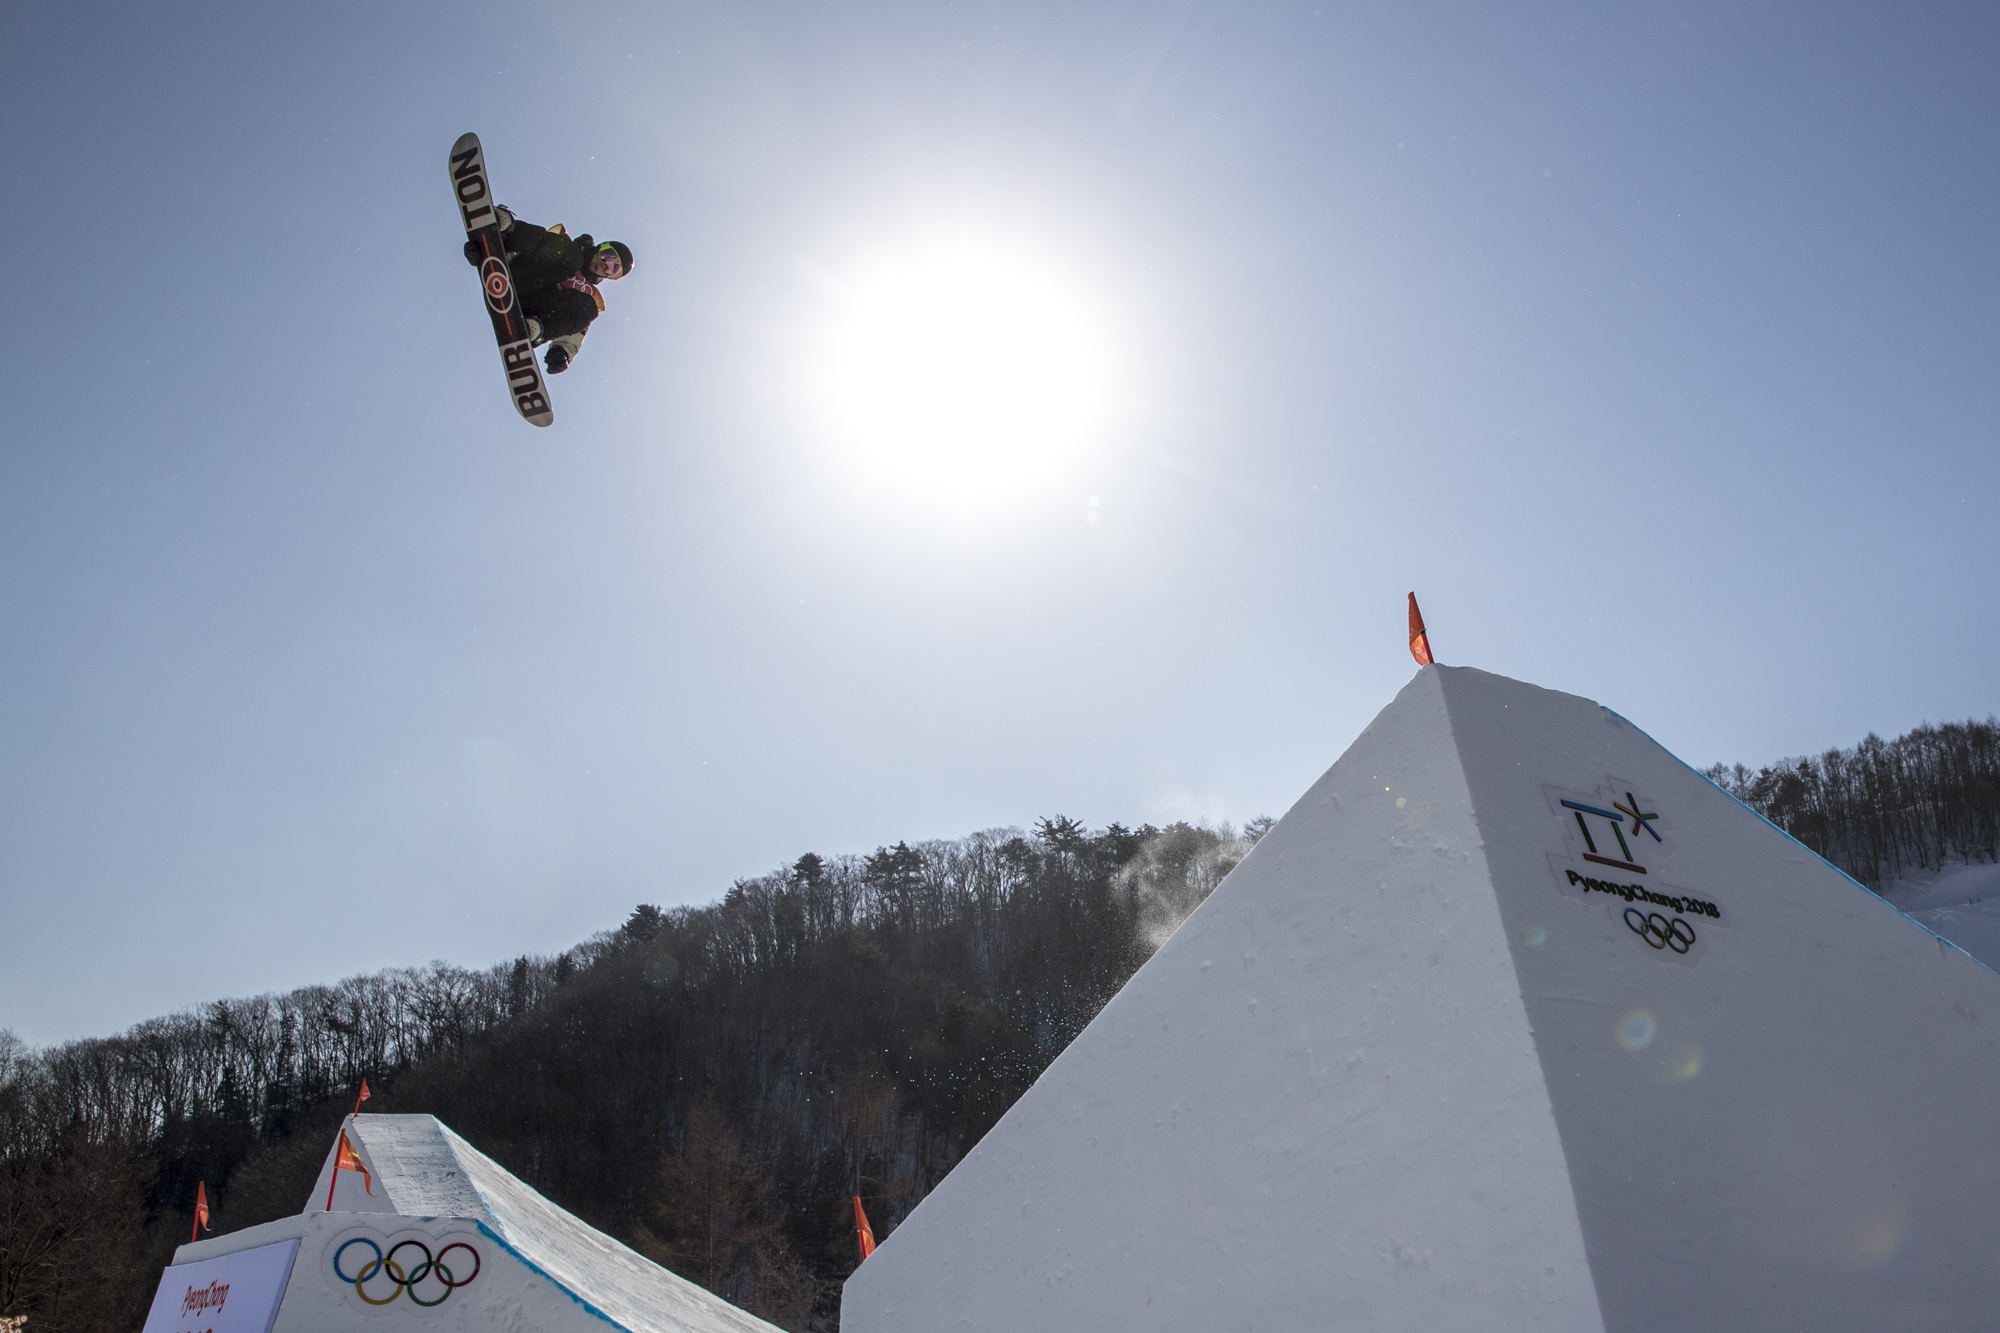 Team Canada's Tyler Nicholson(14), Mark Mcmorris(2), Sebastien Toutant(4) and Max Parrot(7) in qualifying rounds for the Mens Snowboard Slopestyle at Phoenix Snow Park, PyeongChang, South Korea.. Photo/David Jackson